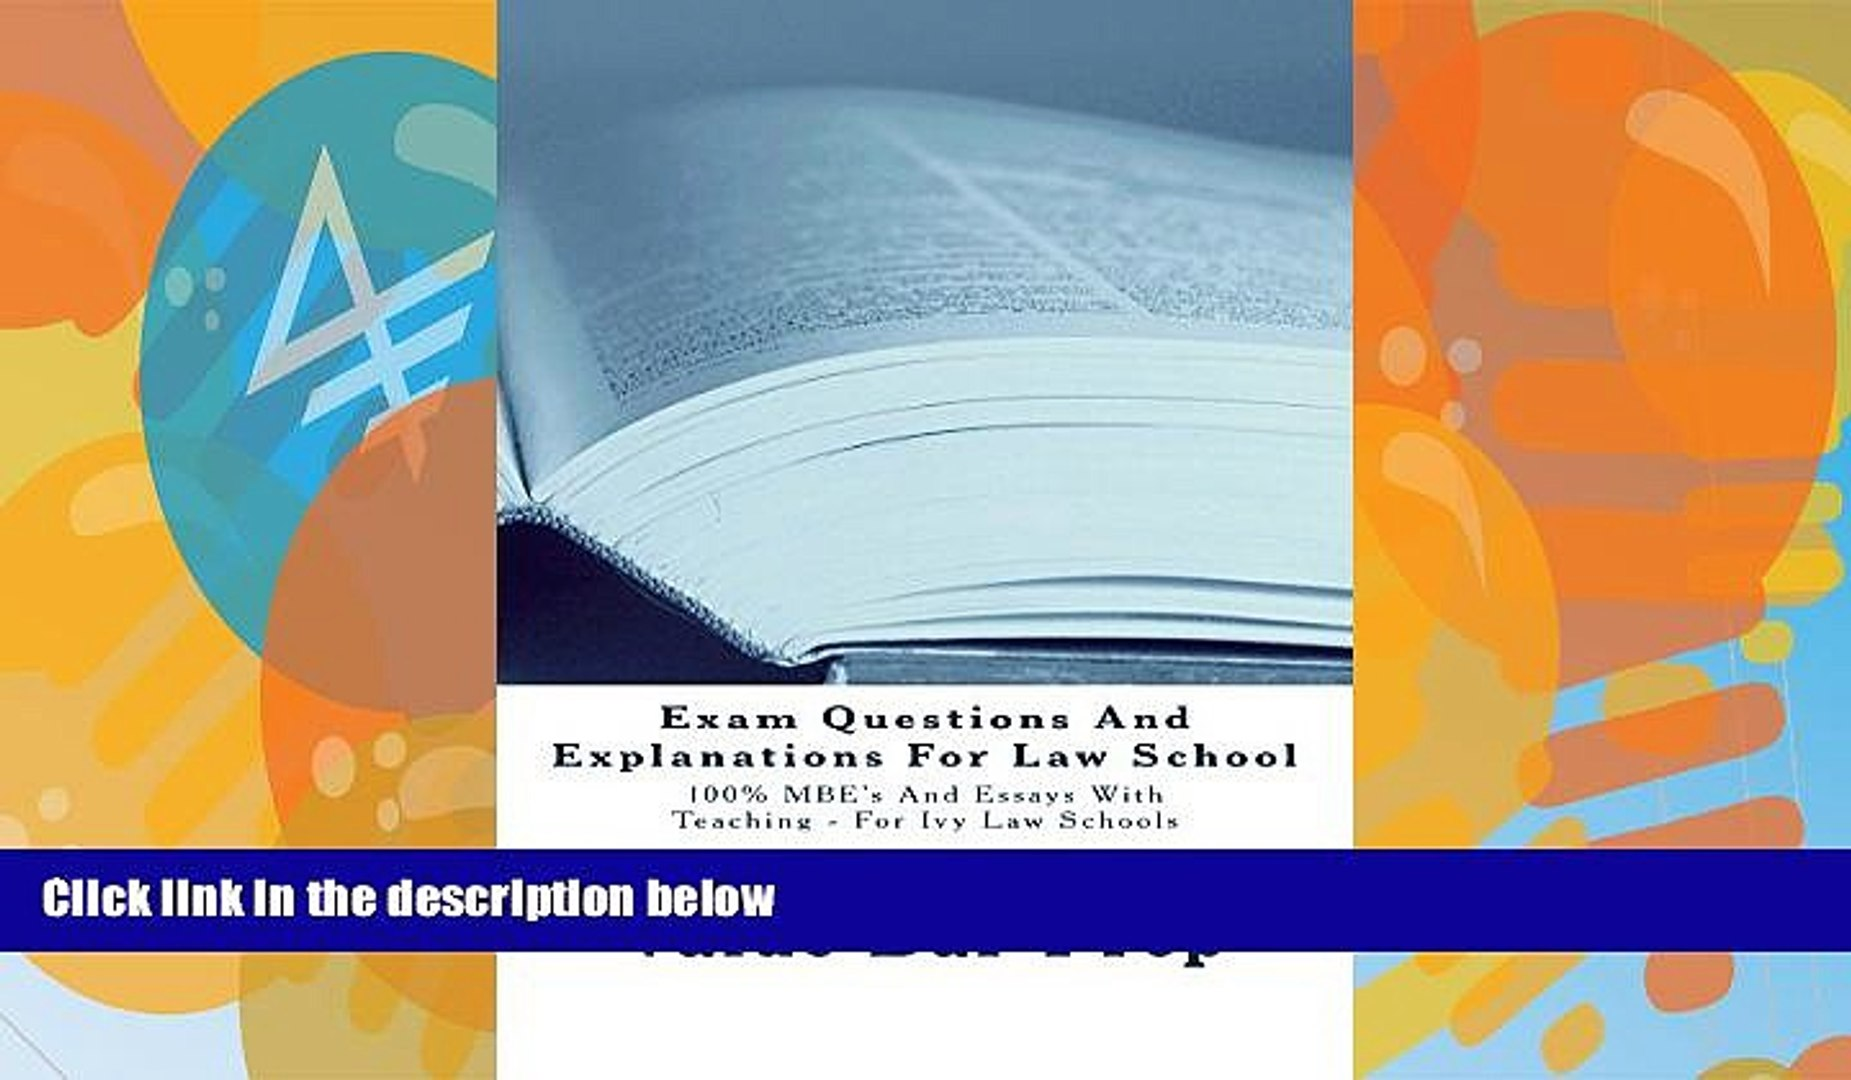 Big Deals  Exam Questions And Explanations For Law Schools A Law School *e-book: e law book,